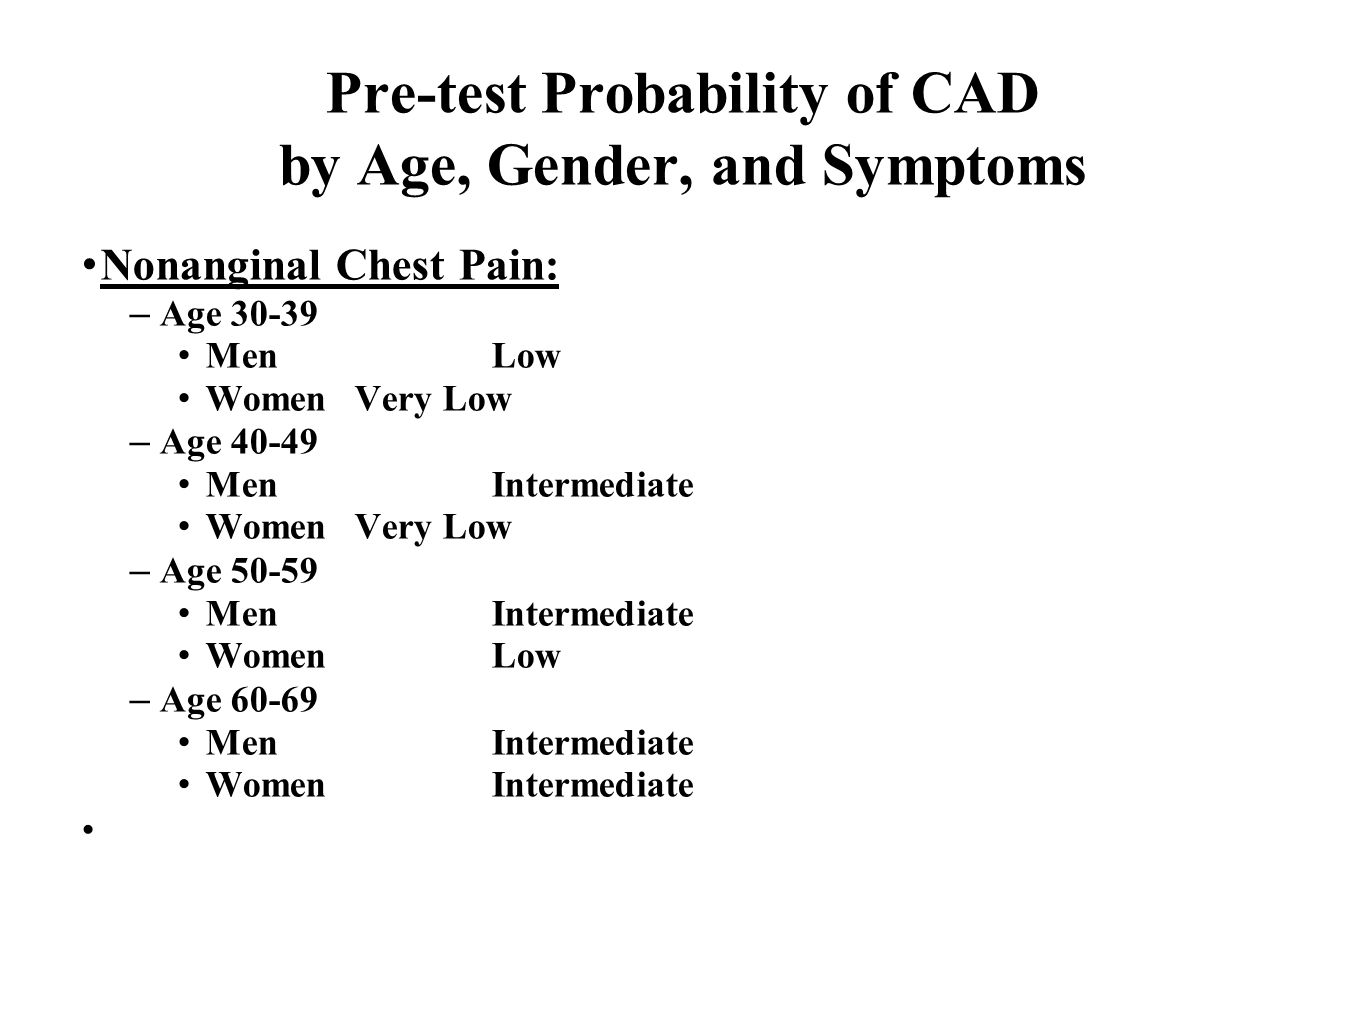 Pre-test Probability of CAD by Age, Gender, and Symptoms